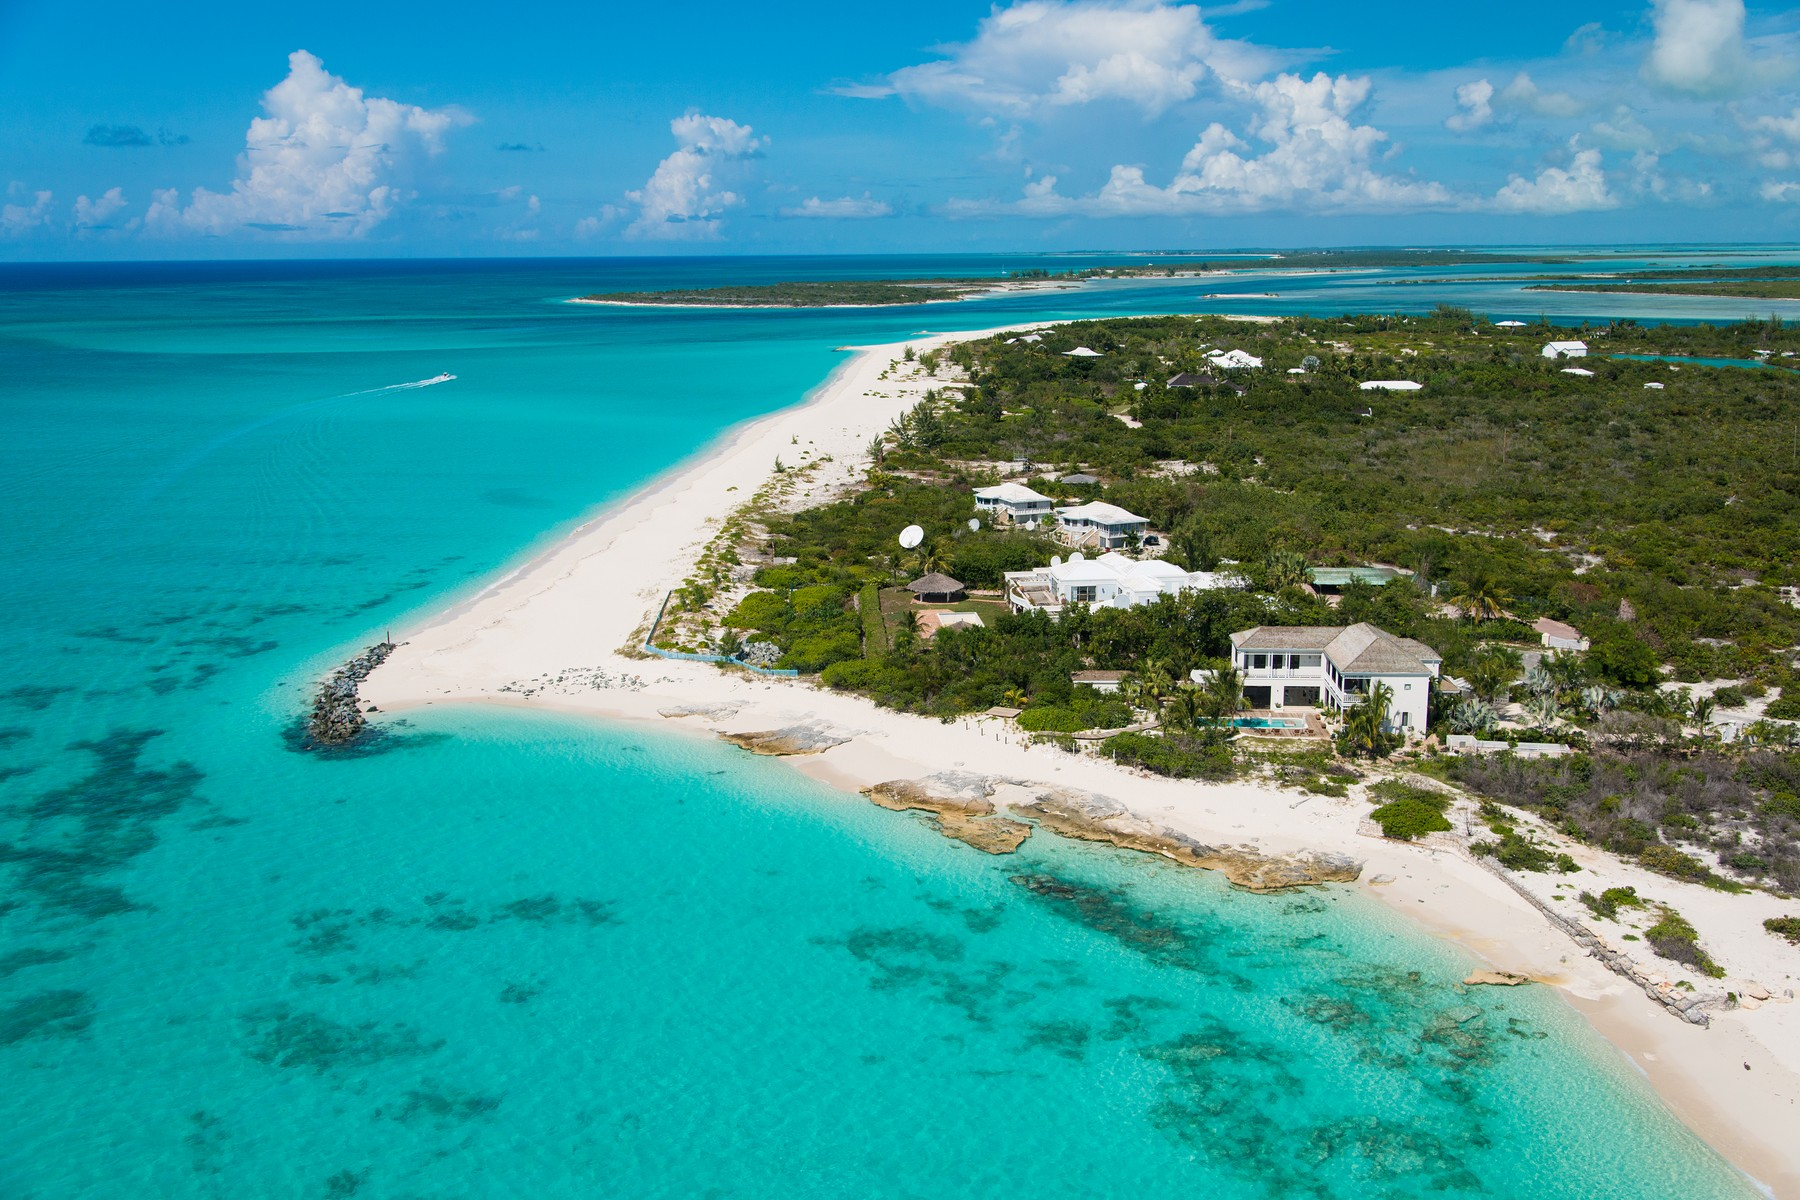 Single Family Home for Sale at Saving Grace - Luxurious Beachfront Villa Grace Bay, Providenciales, TCI BWI Turks And Caicos Islands